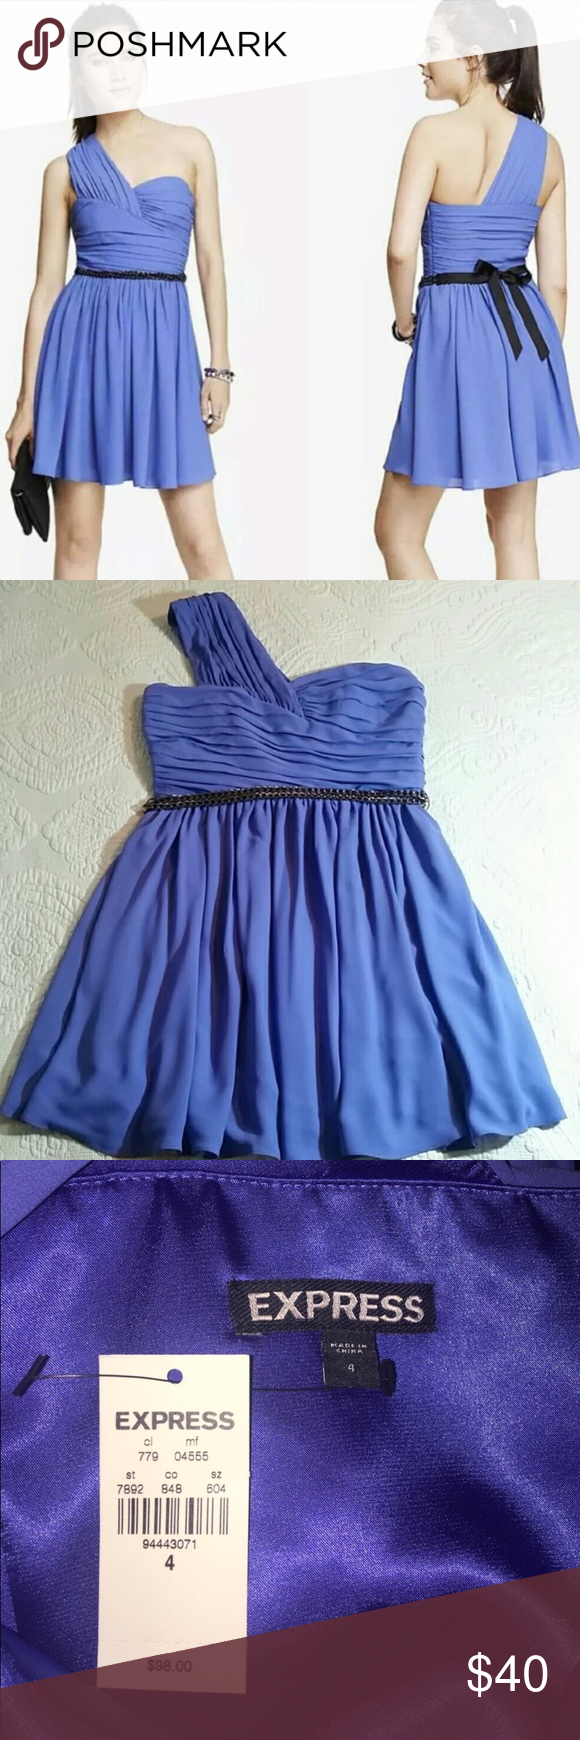 NWT Periwinkle Express Dress   Express dresses, Shoulder and ...